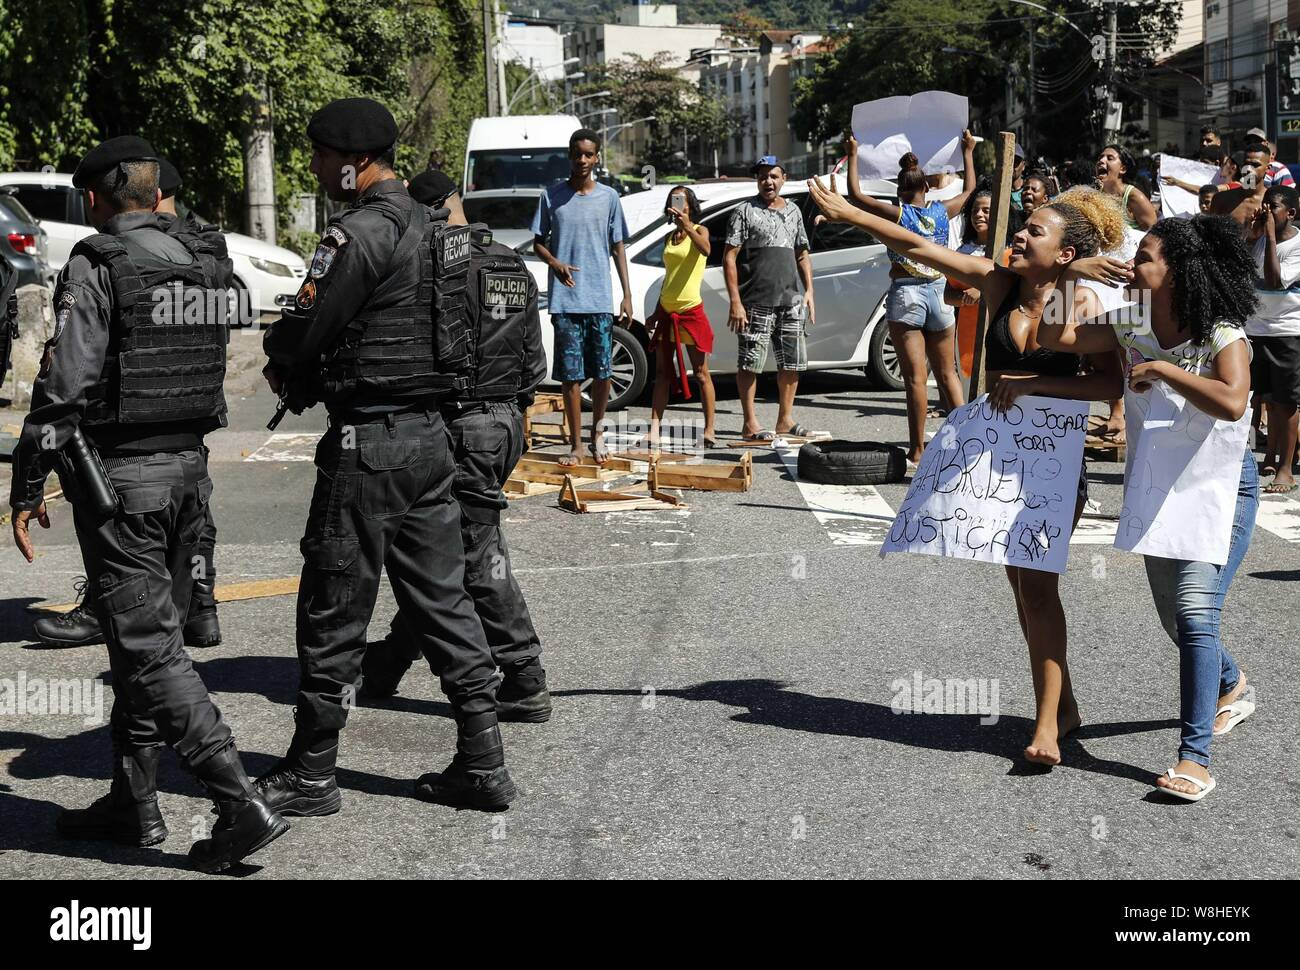 Rio De Janeiro Brazil 09th Aug 2019 Two Women Shout At Police Officers In Rio De Janeiro Brazil 09 August 2019 During A Demonstration For The Death Of A 18 Year Old Student Gabriel